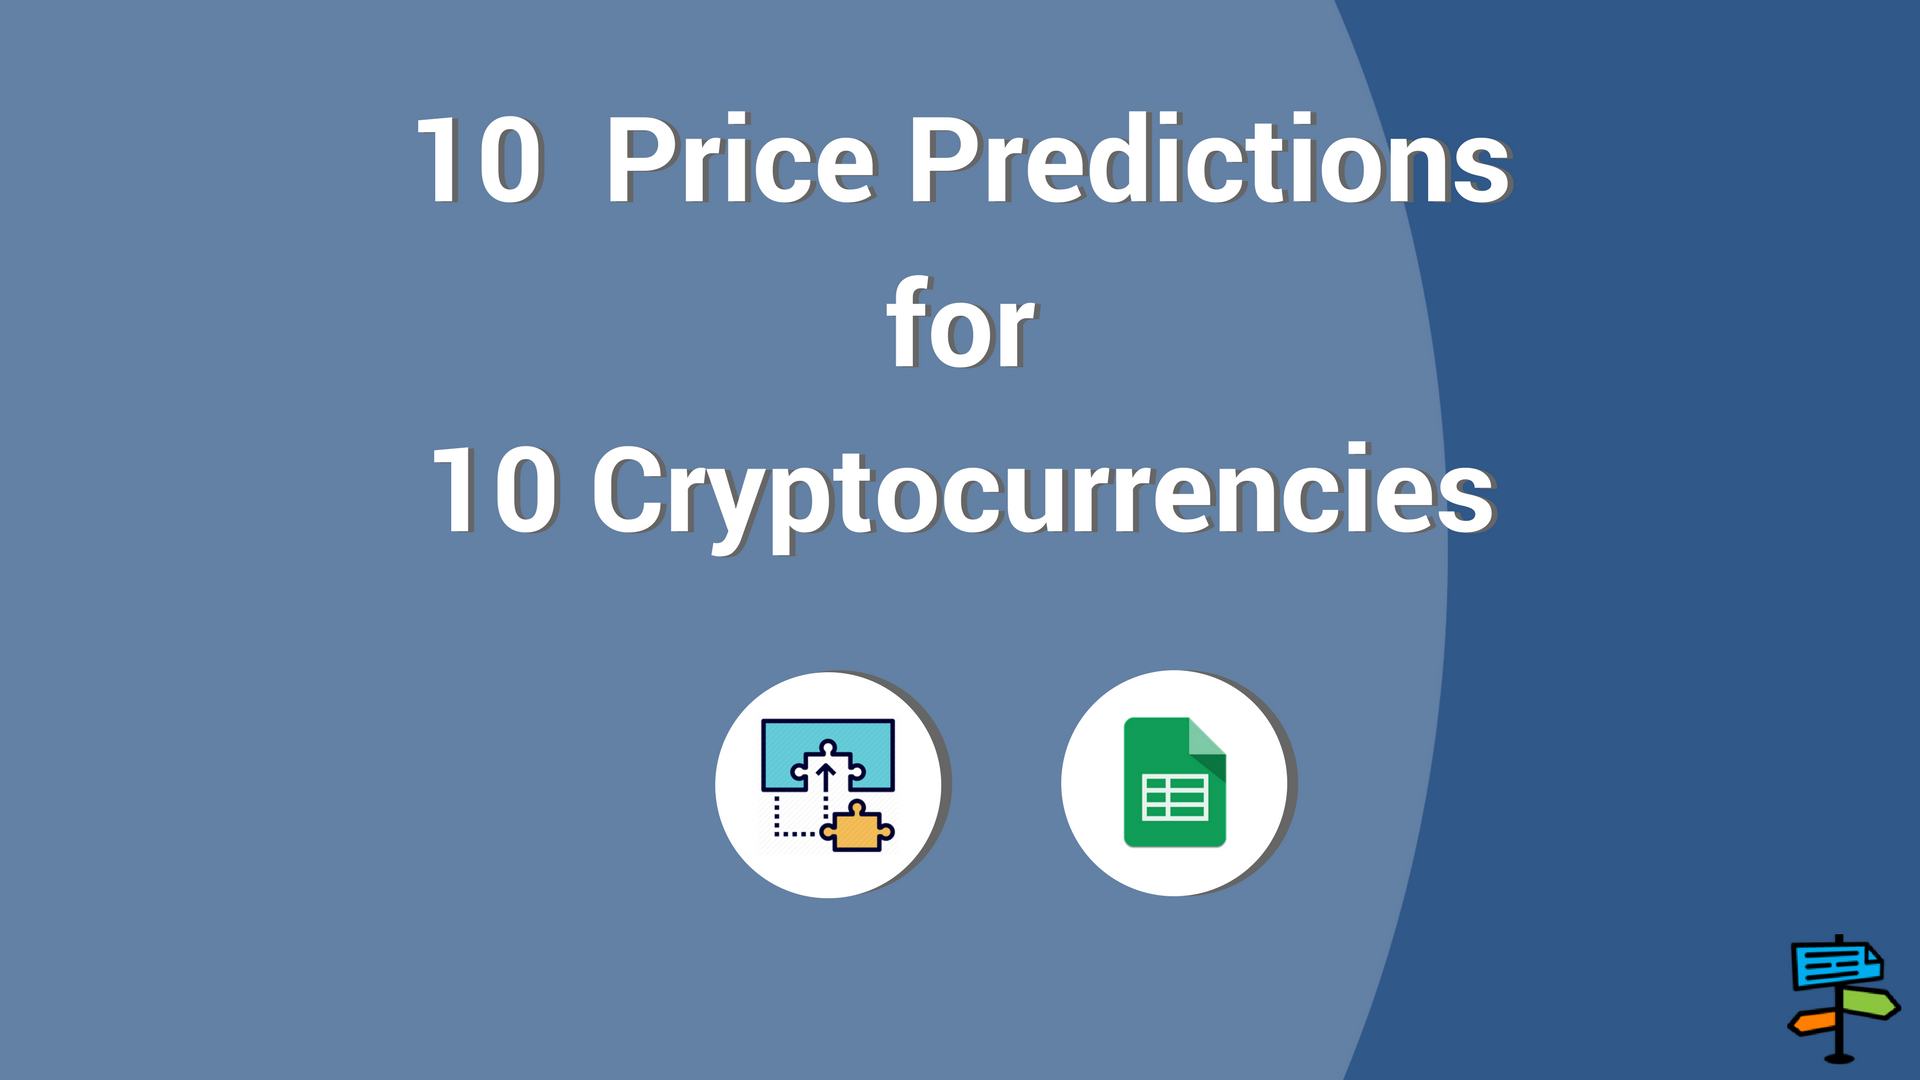 10 Statistical Price Predictions for 10 Cryptocurrencies